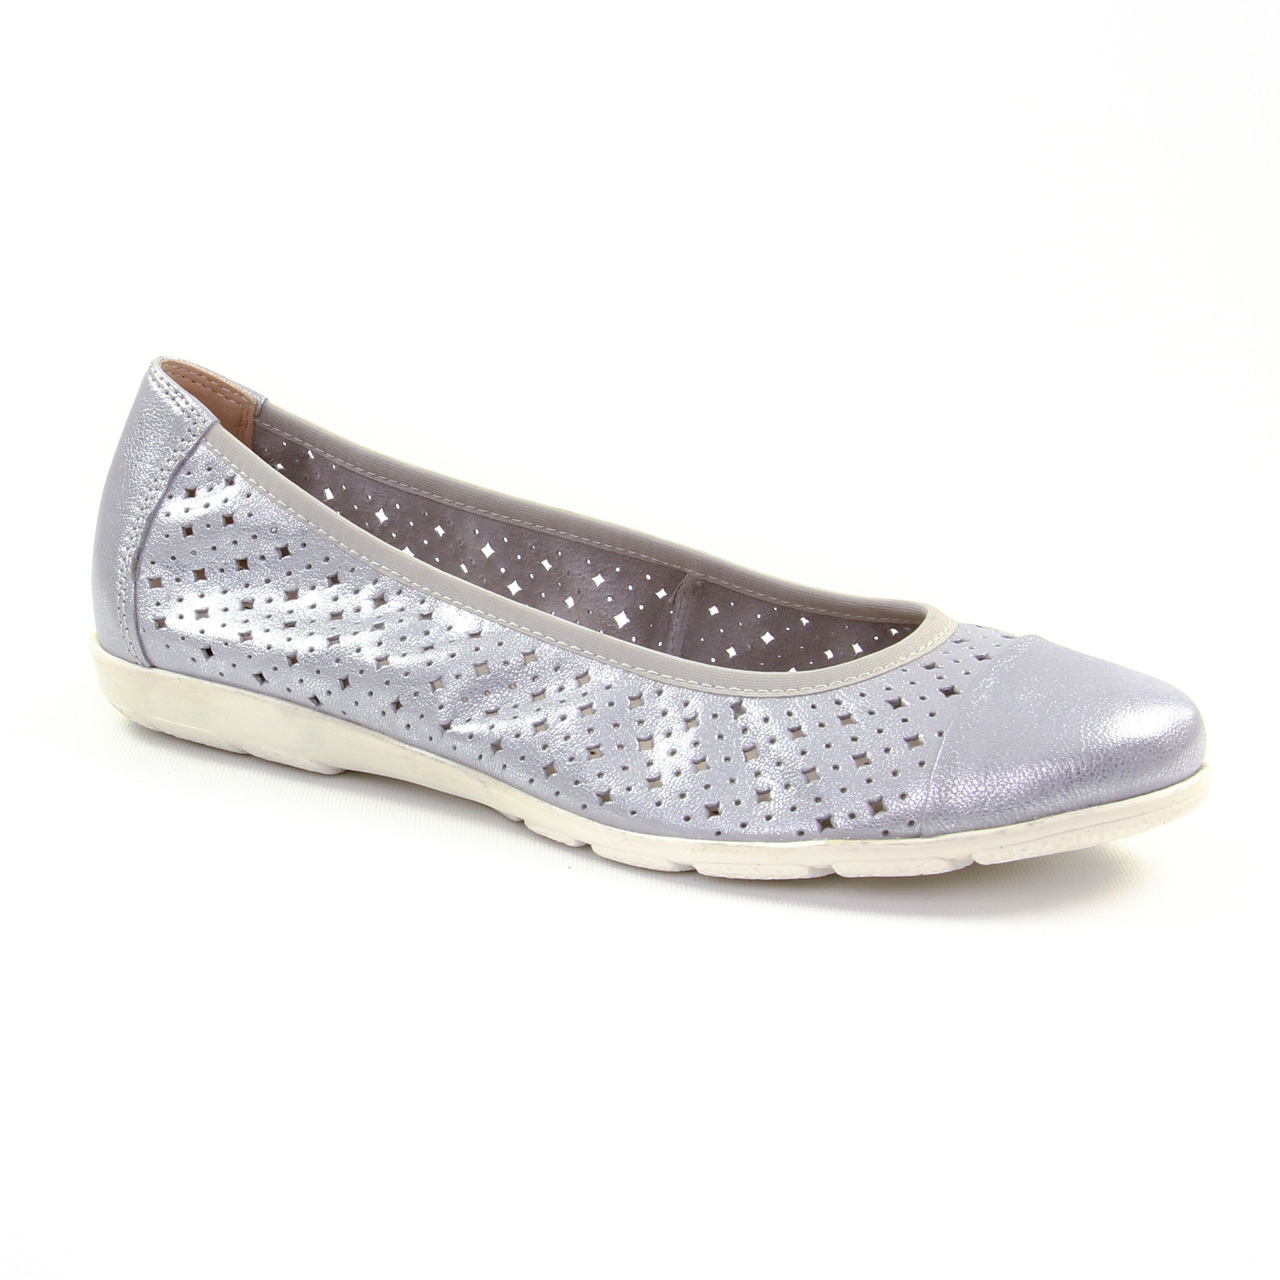 Chaussures Caprice grises femme gWCtr